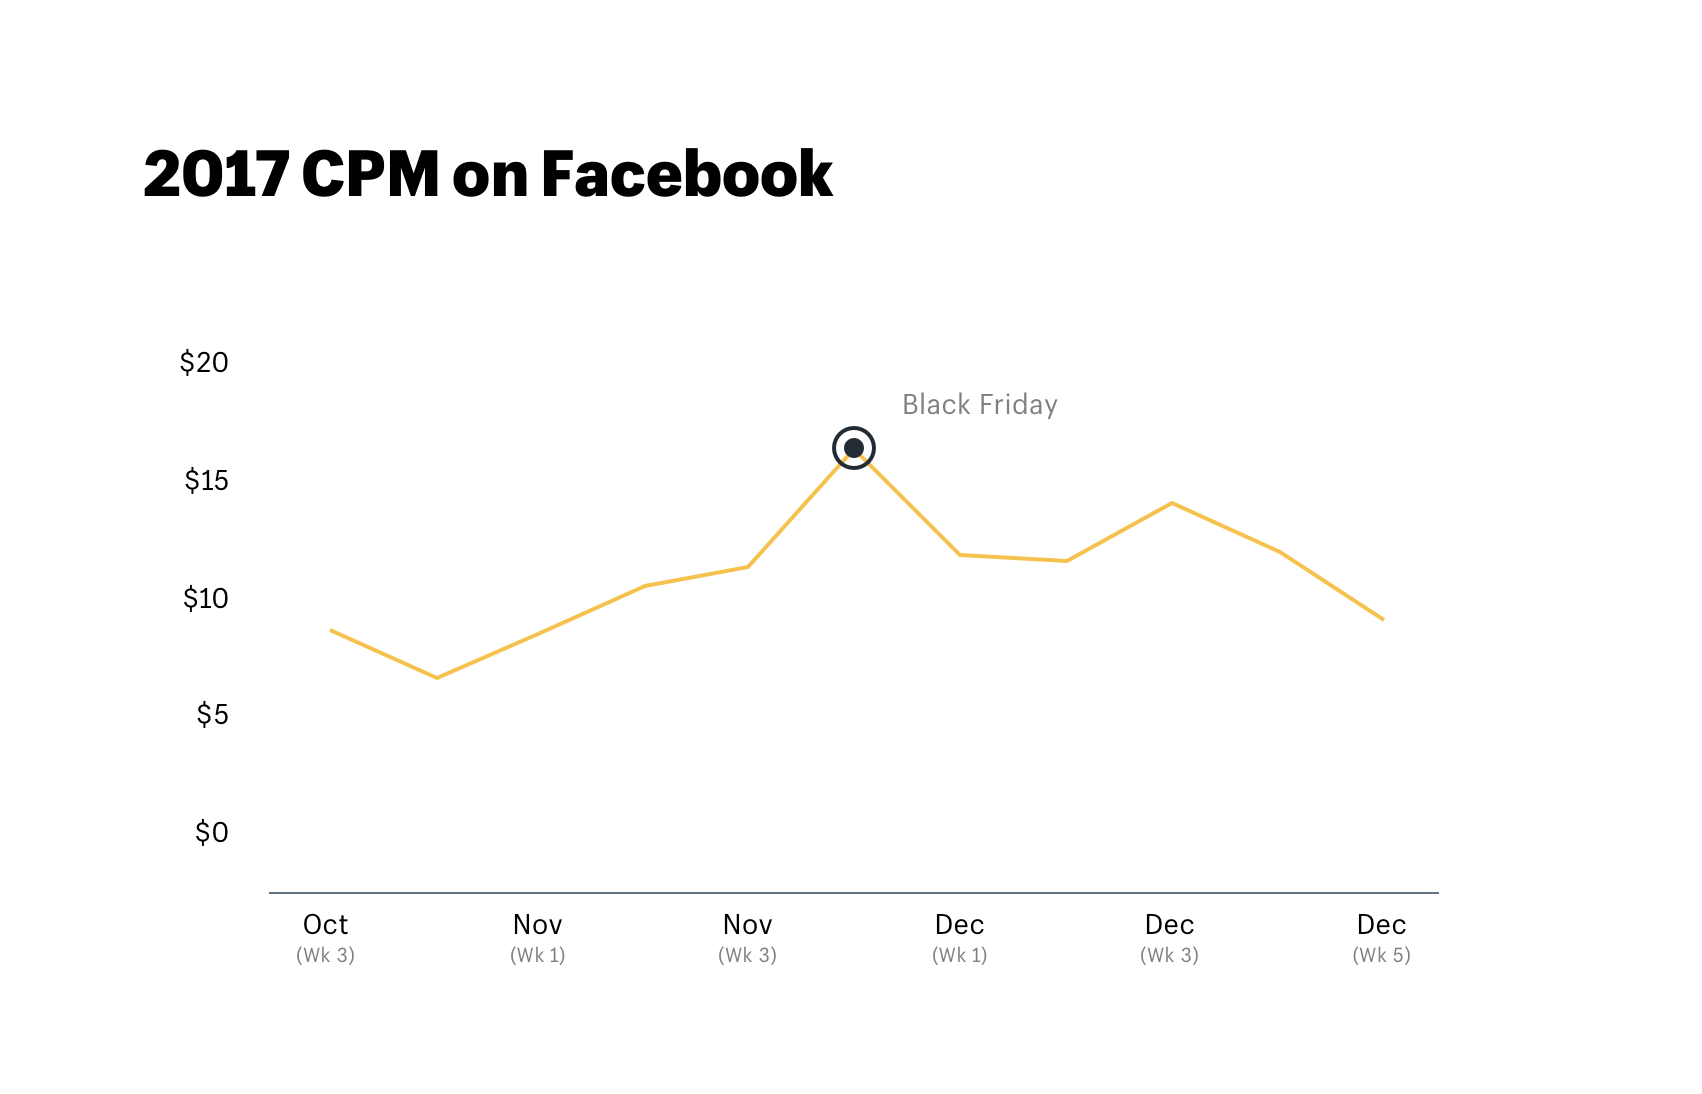 2017 CPM on Facebook during Black Friday and Q4